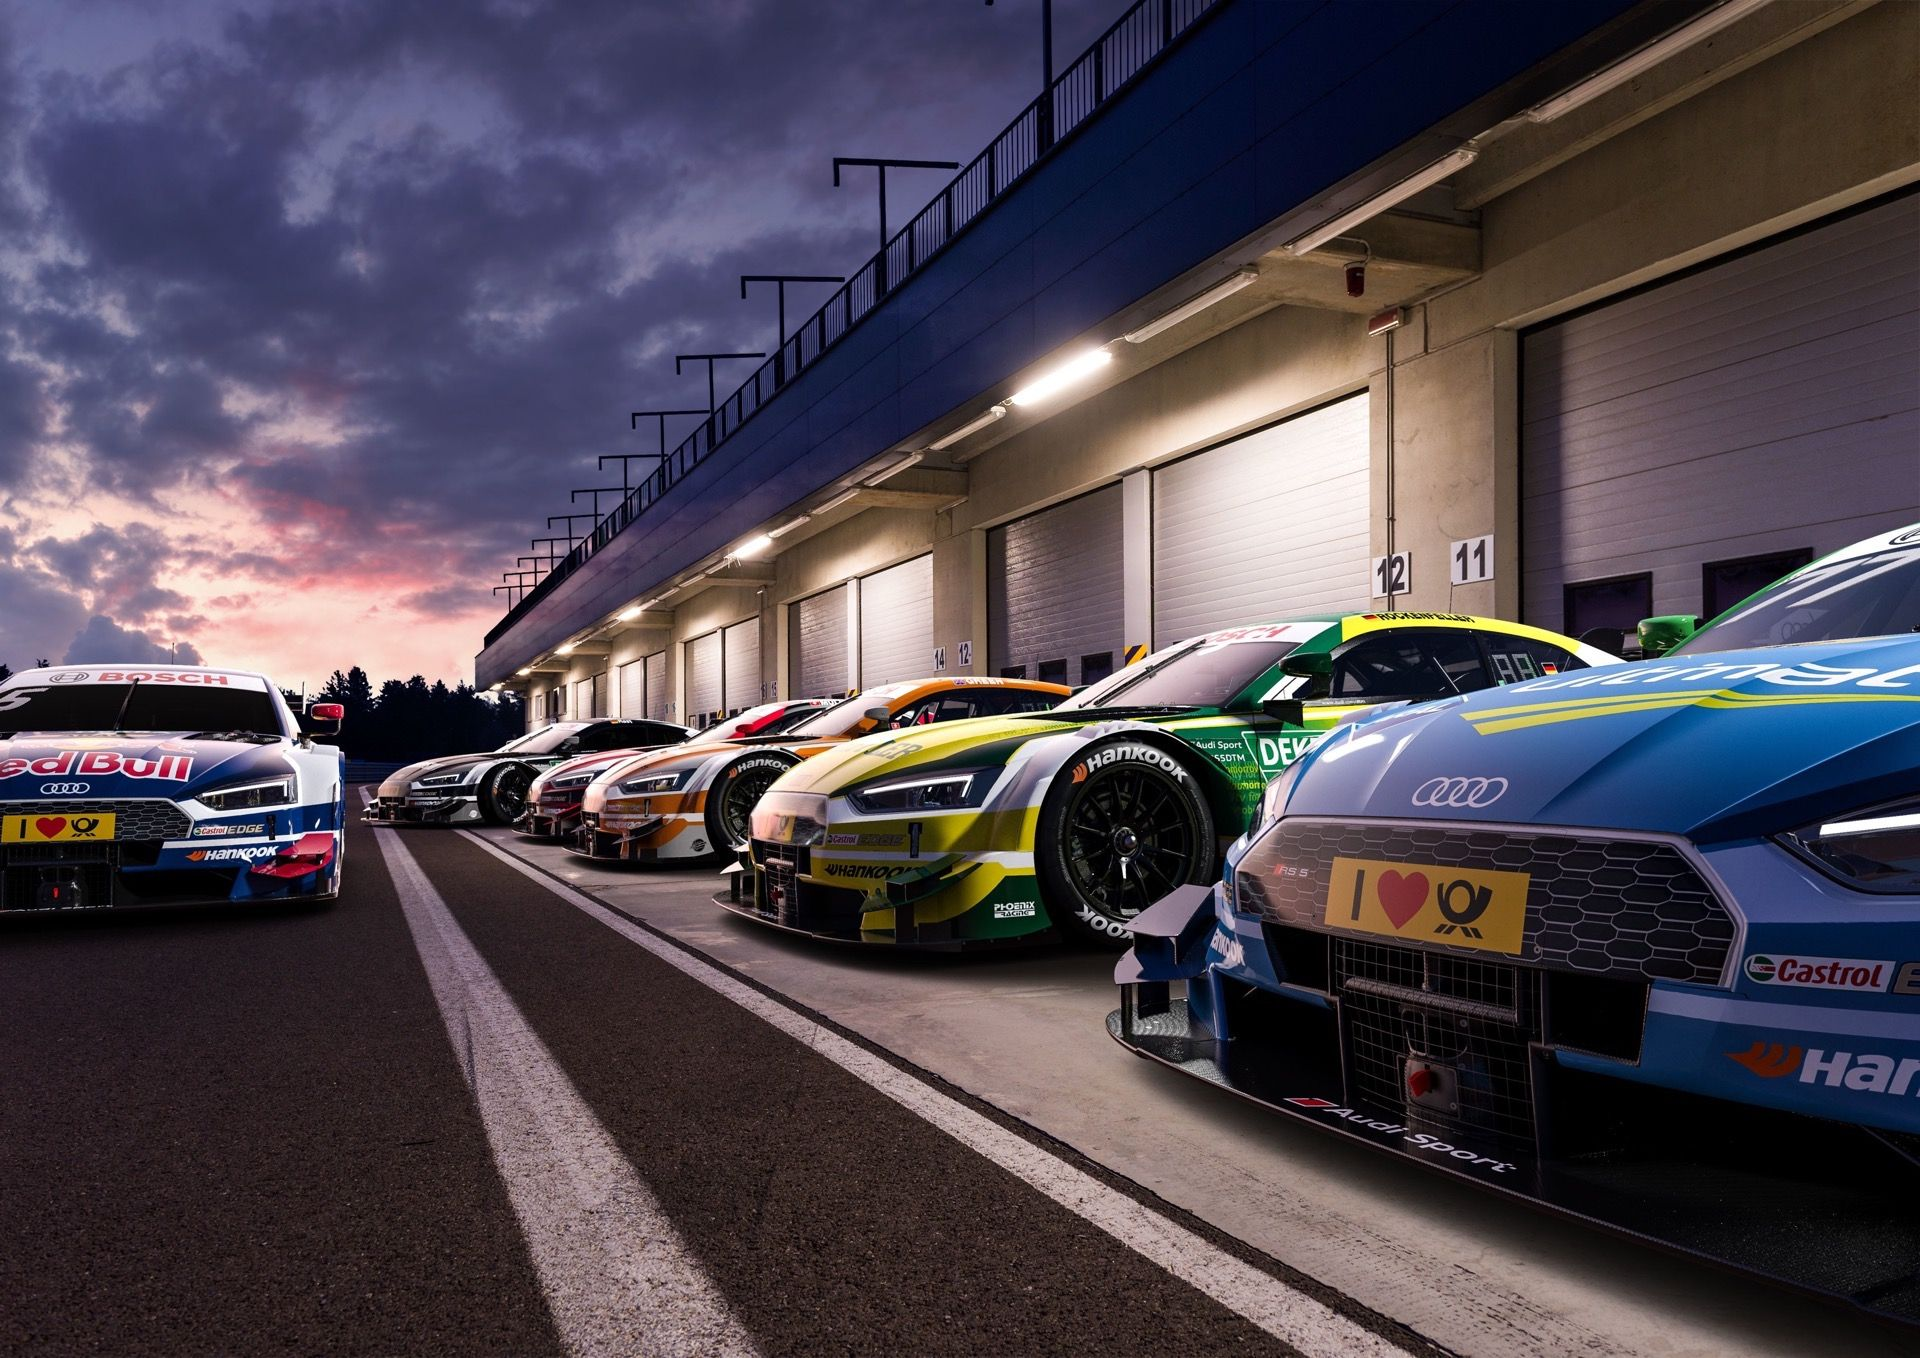 Your Stunning Audi Rs5 Dtm Wallpaper Is Here Audi Rs5 Audi Audi Rs